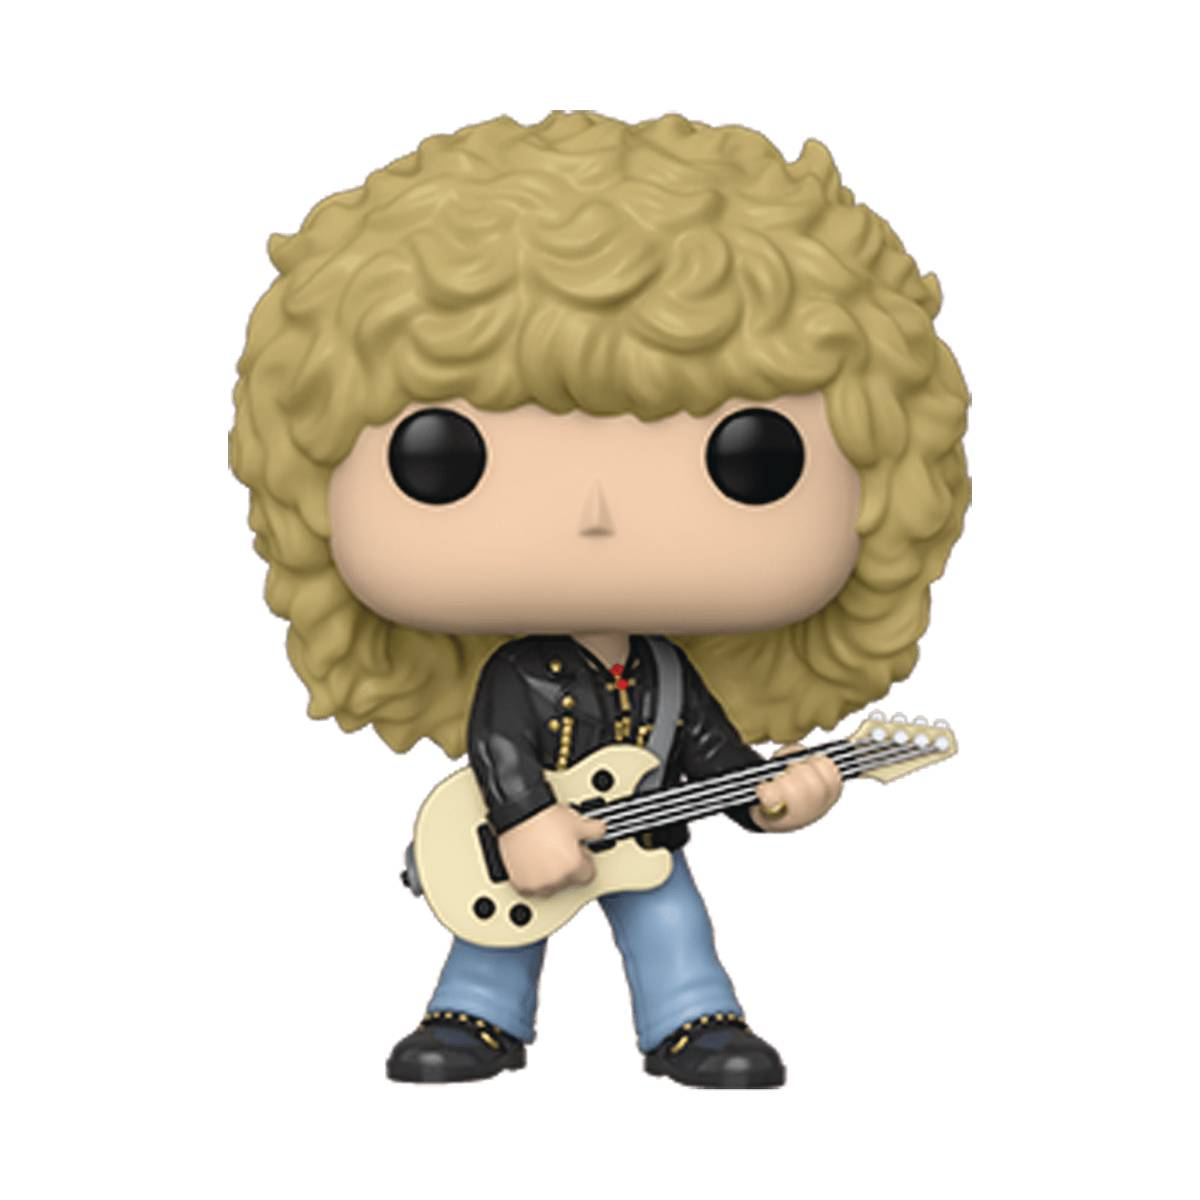 POP ROCKS DEF LEPPARD RICK SAVAGE VIN FIG